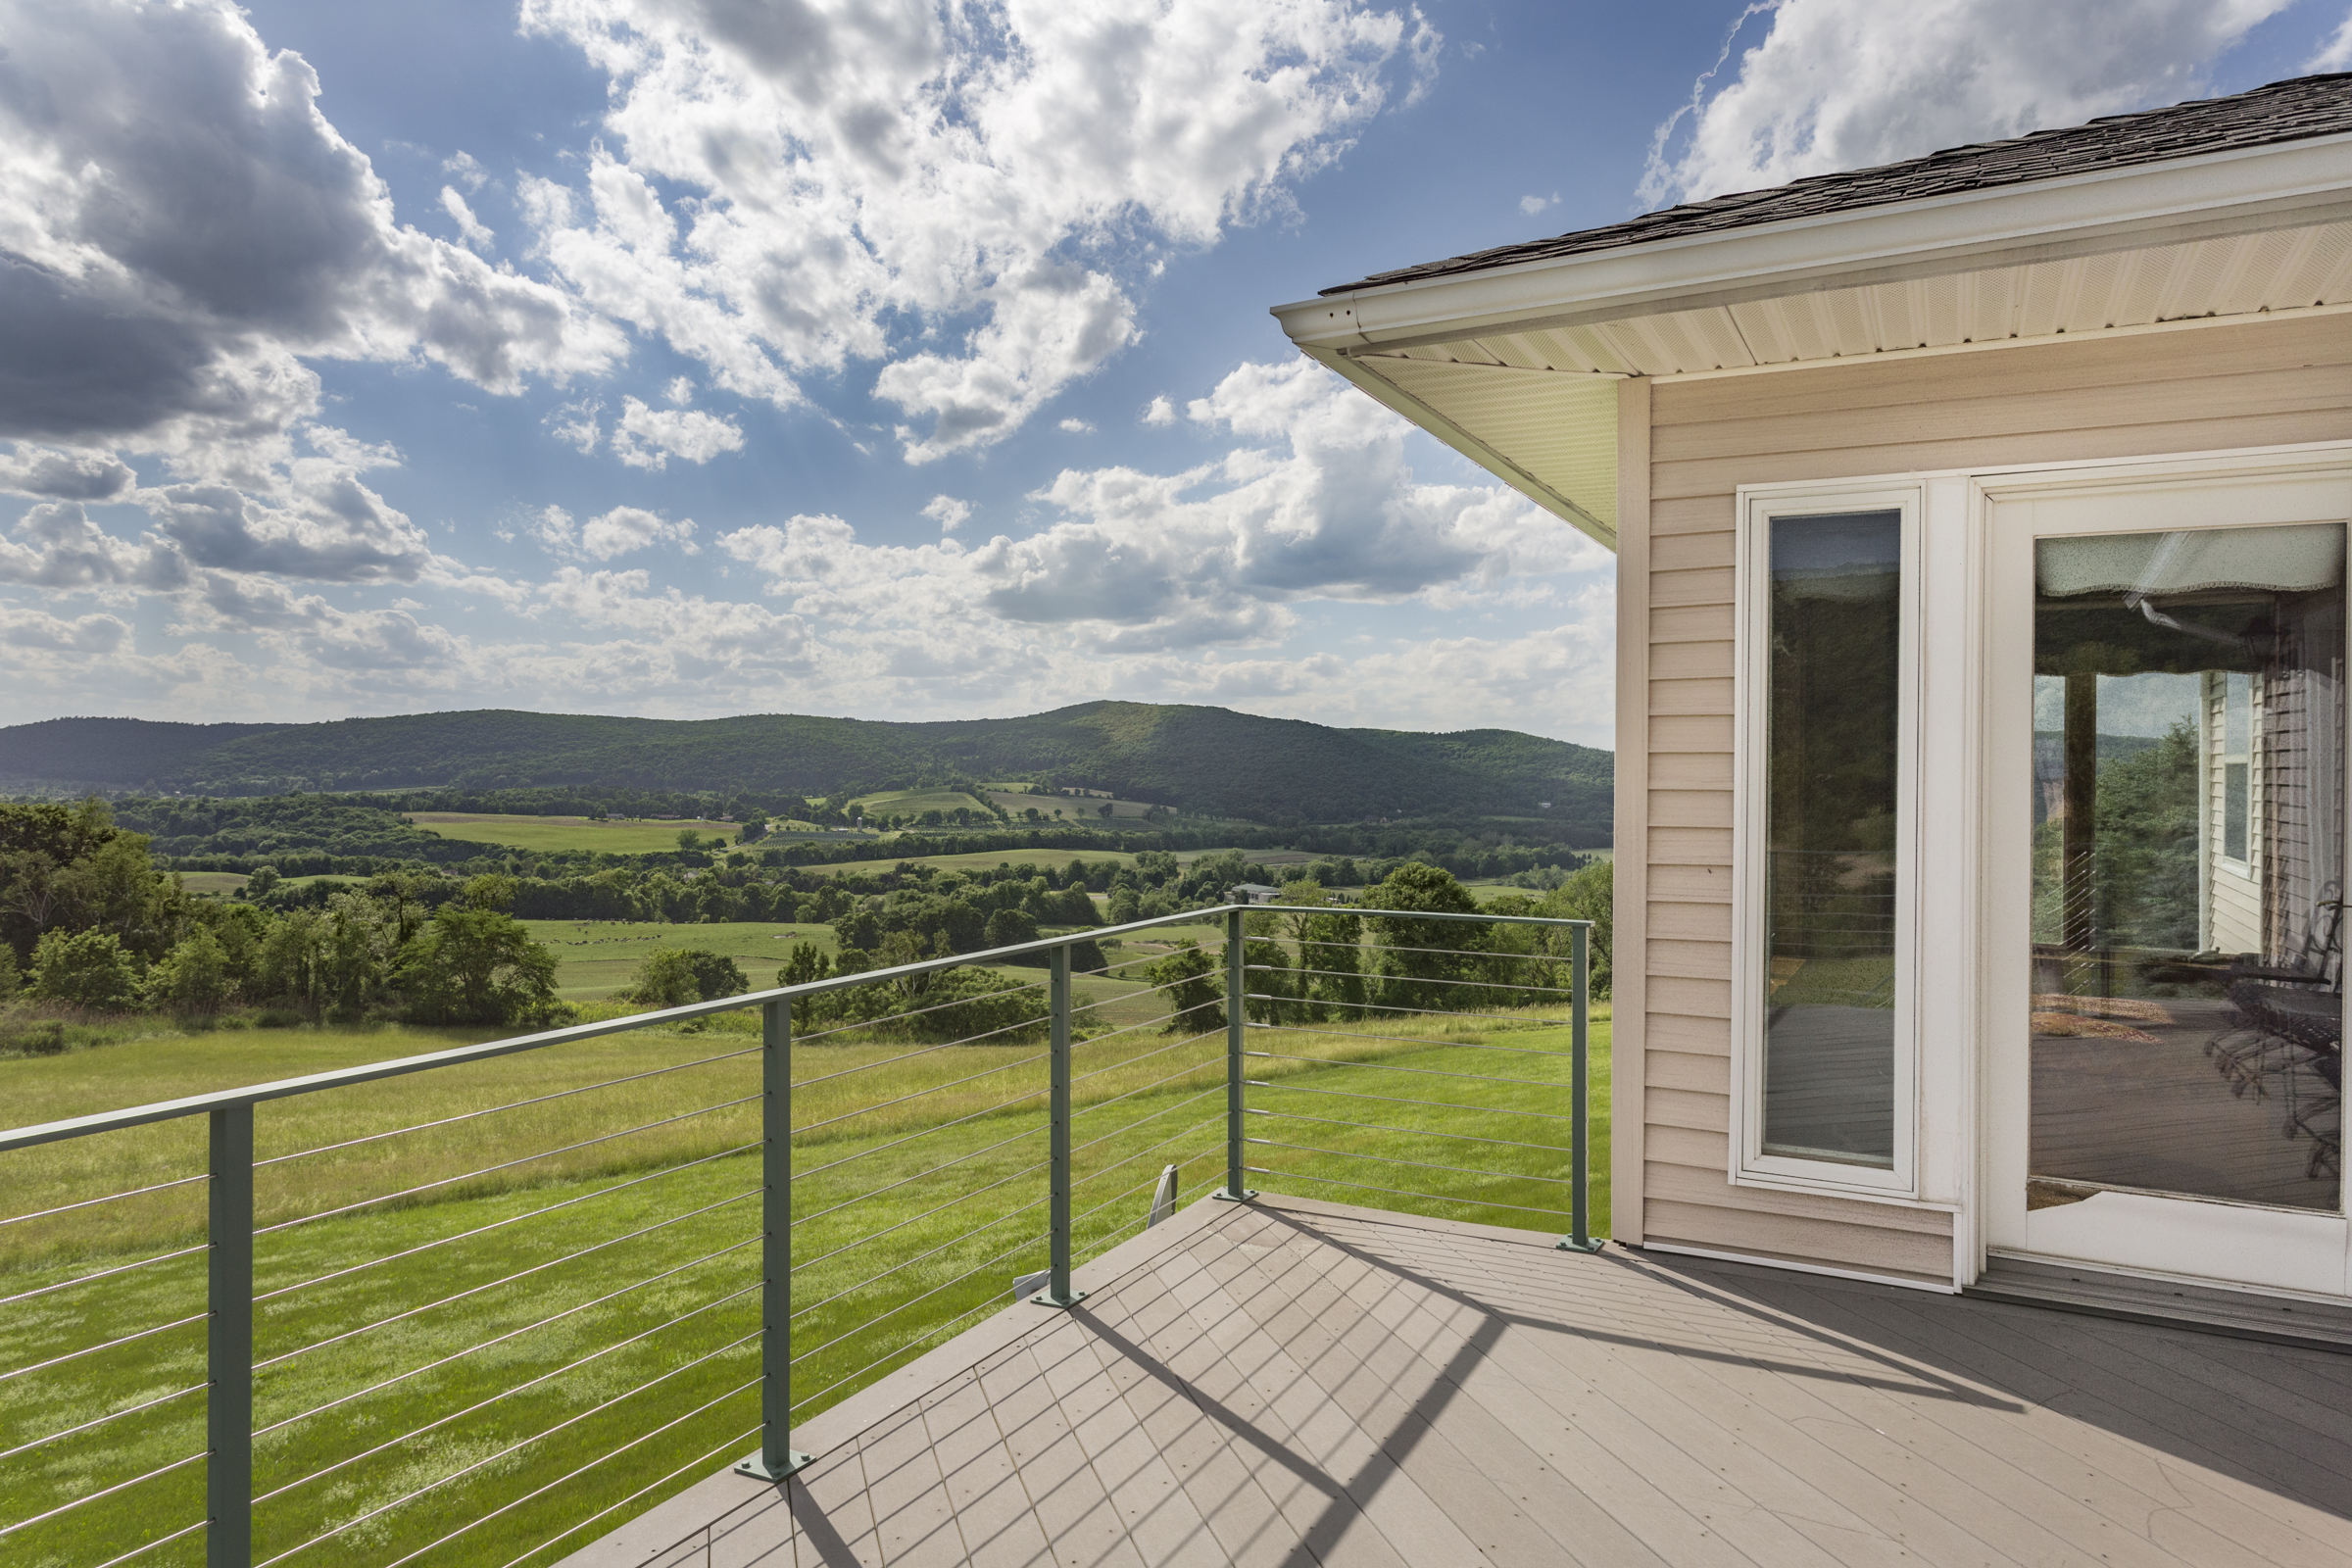 Single Family Home for Sale at Simple Living with Stunning Views 152 High View Farm Rd Copake, New York, 12516 United States